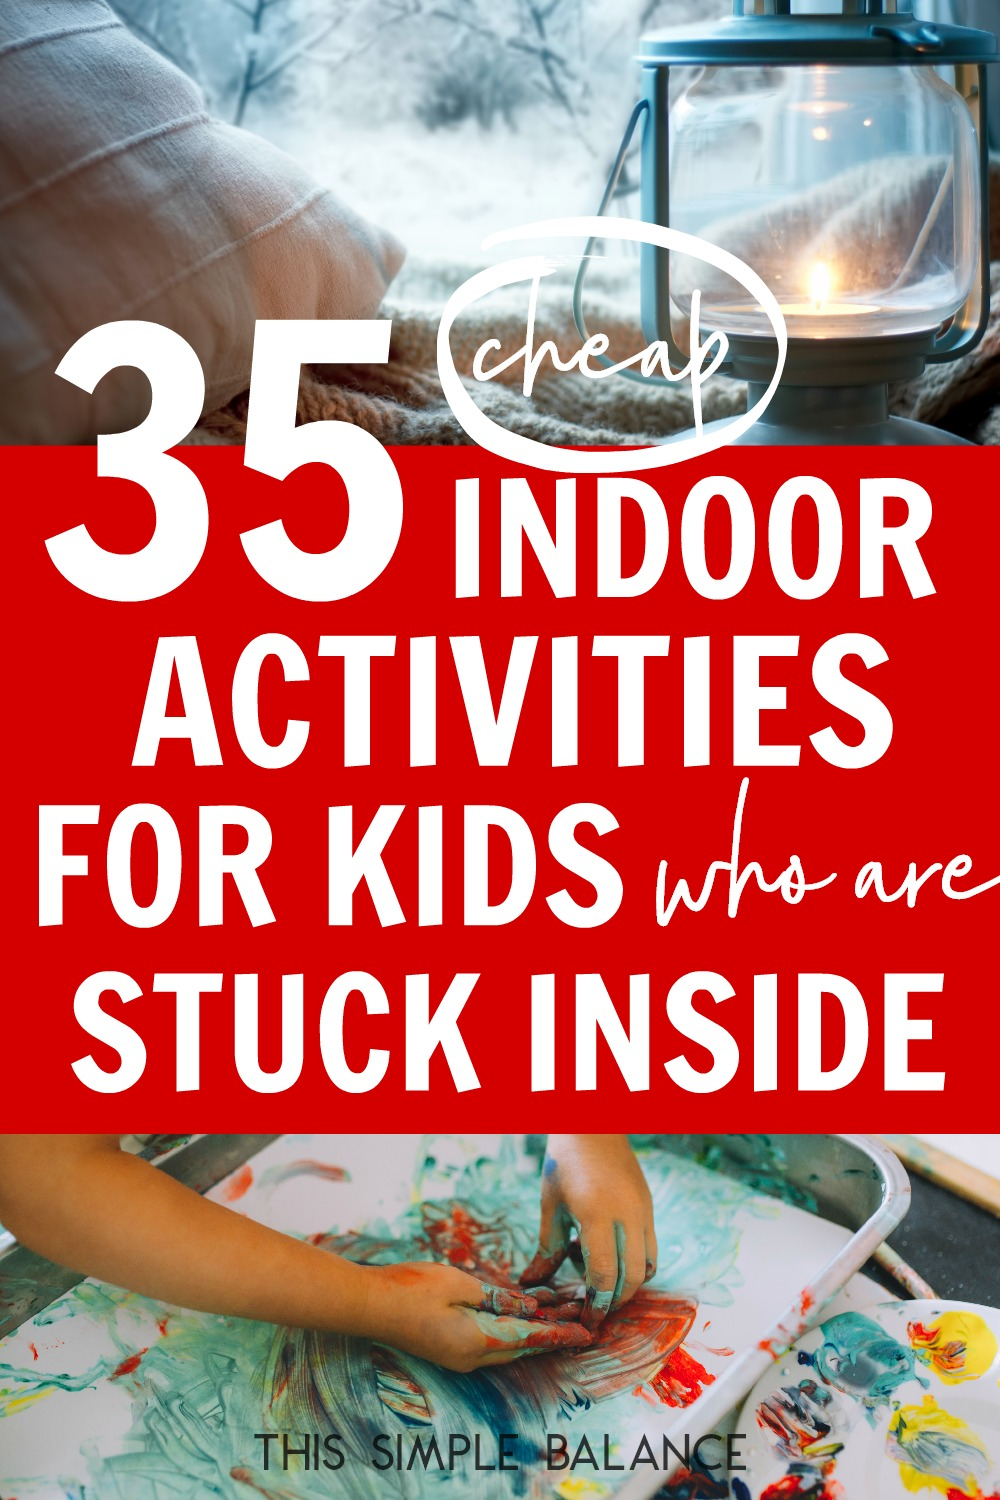 Indoor Activities for Kids who are stuck inside this winter (and are driving you CRAZY)